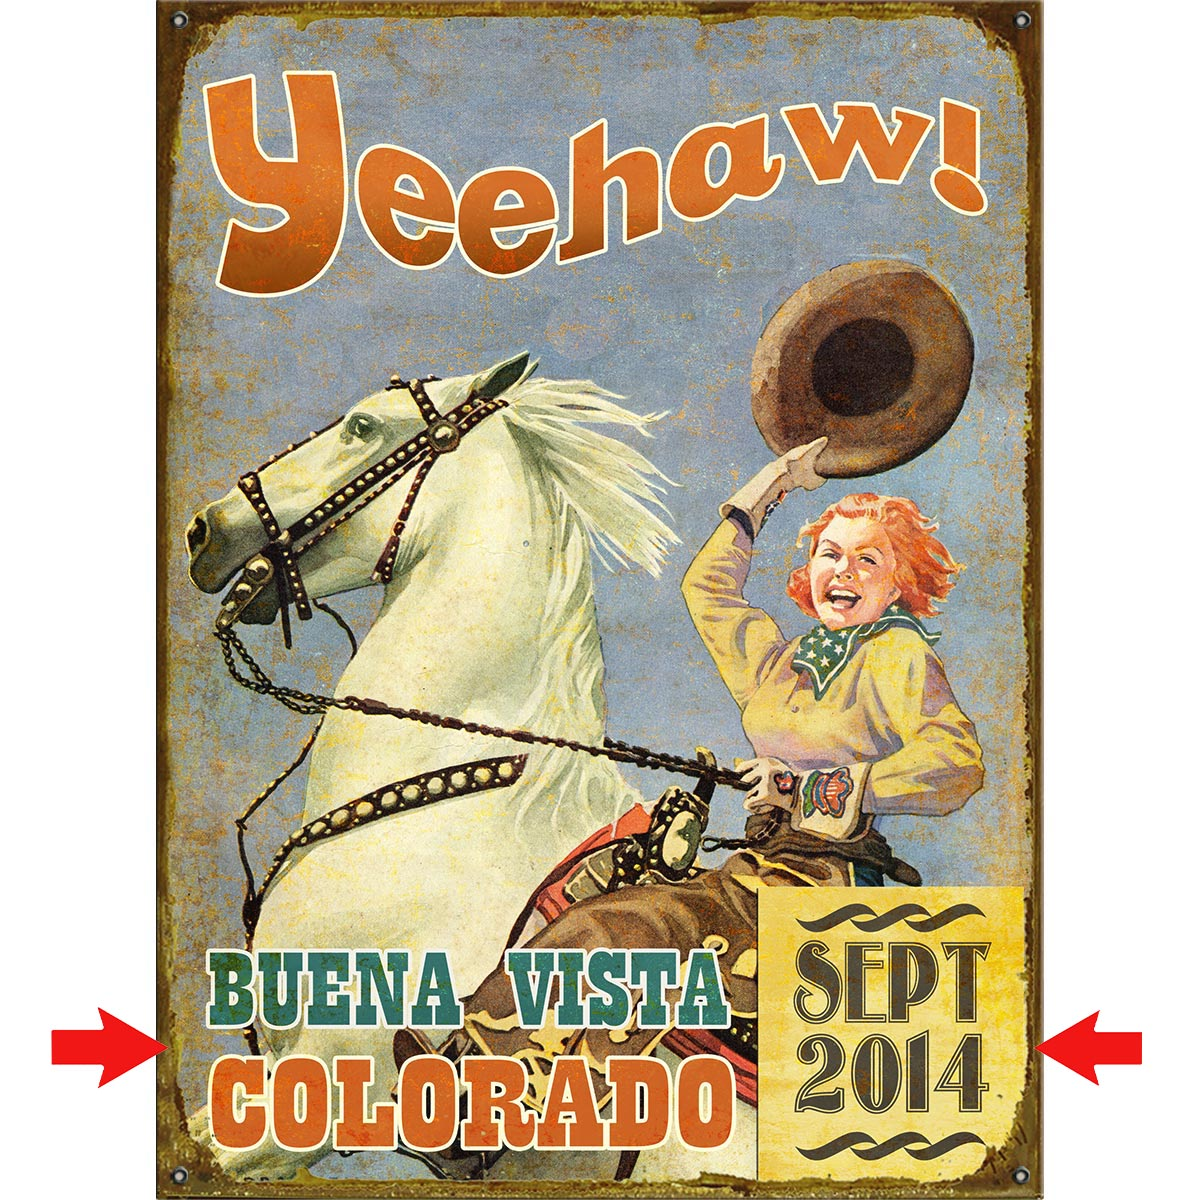 Yeehaw Cowgirl Personalized Sign - 28 x 38